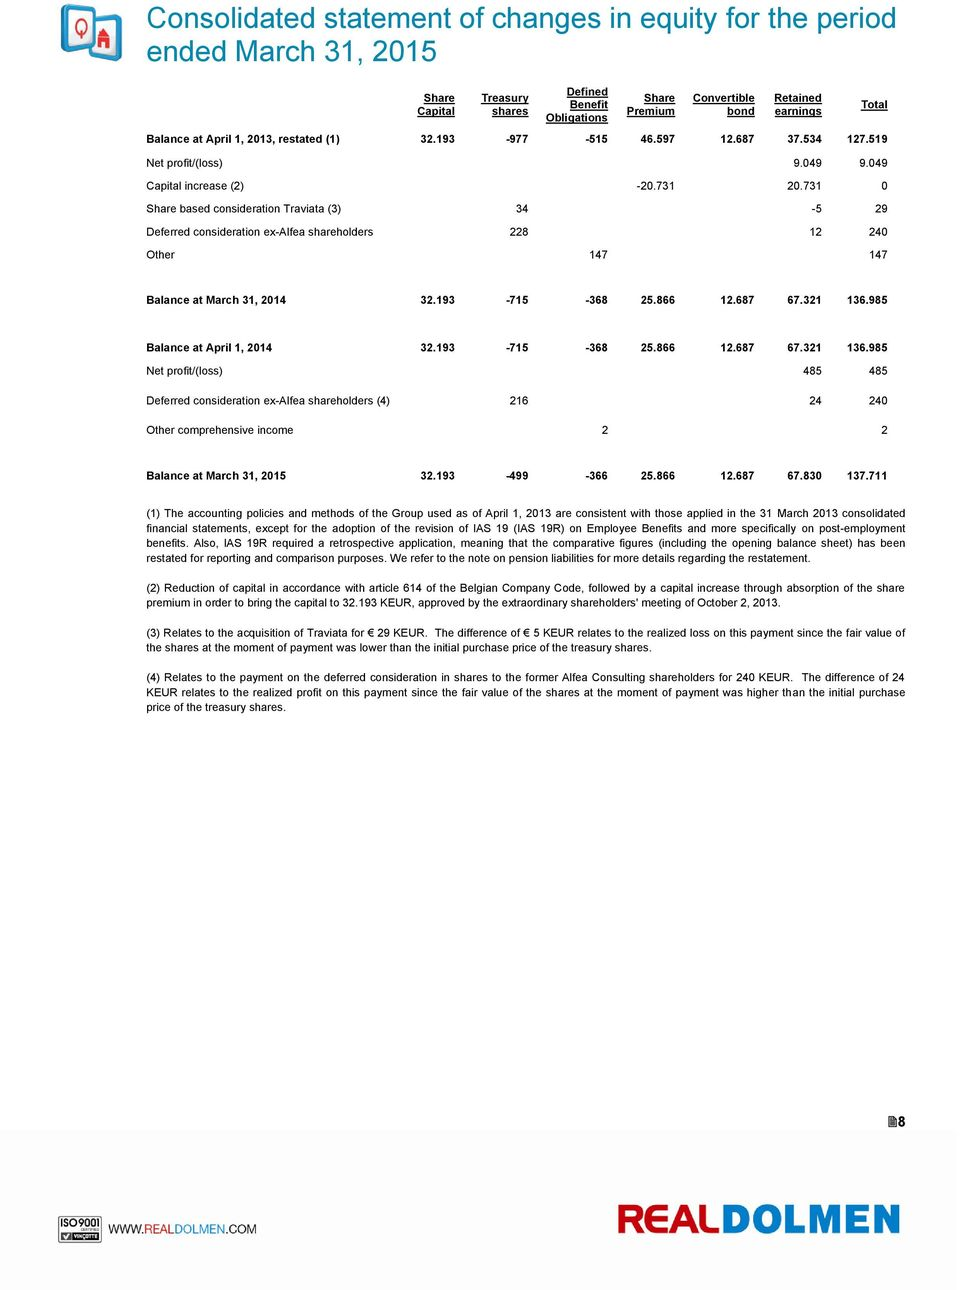 731 0 Share based consideration Traviata (3) 34-5 29 Deferred consideration ex-alfea shareholders 228 12 240 Other 147 147 Total Balance at March 31, 2014 32.193-715 -368 25.866 12.687 67.321 136.